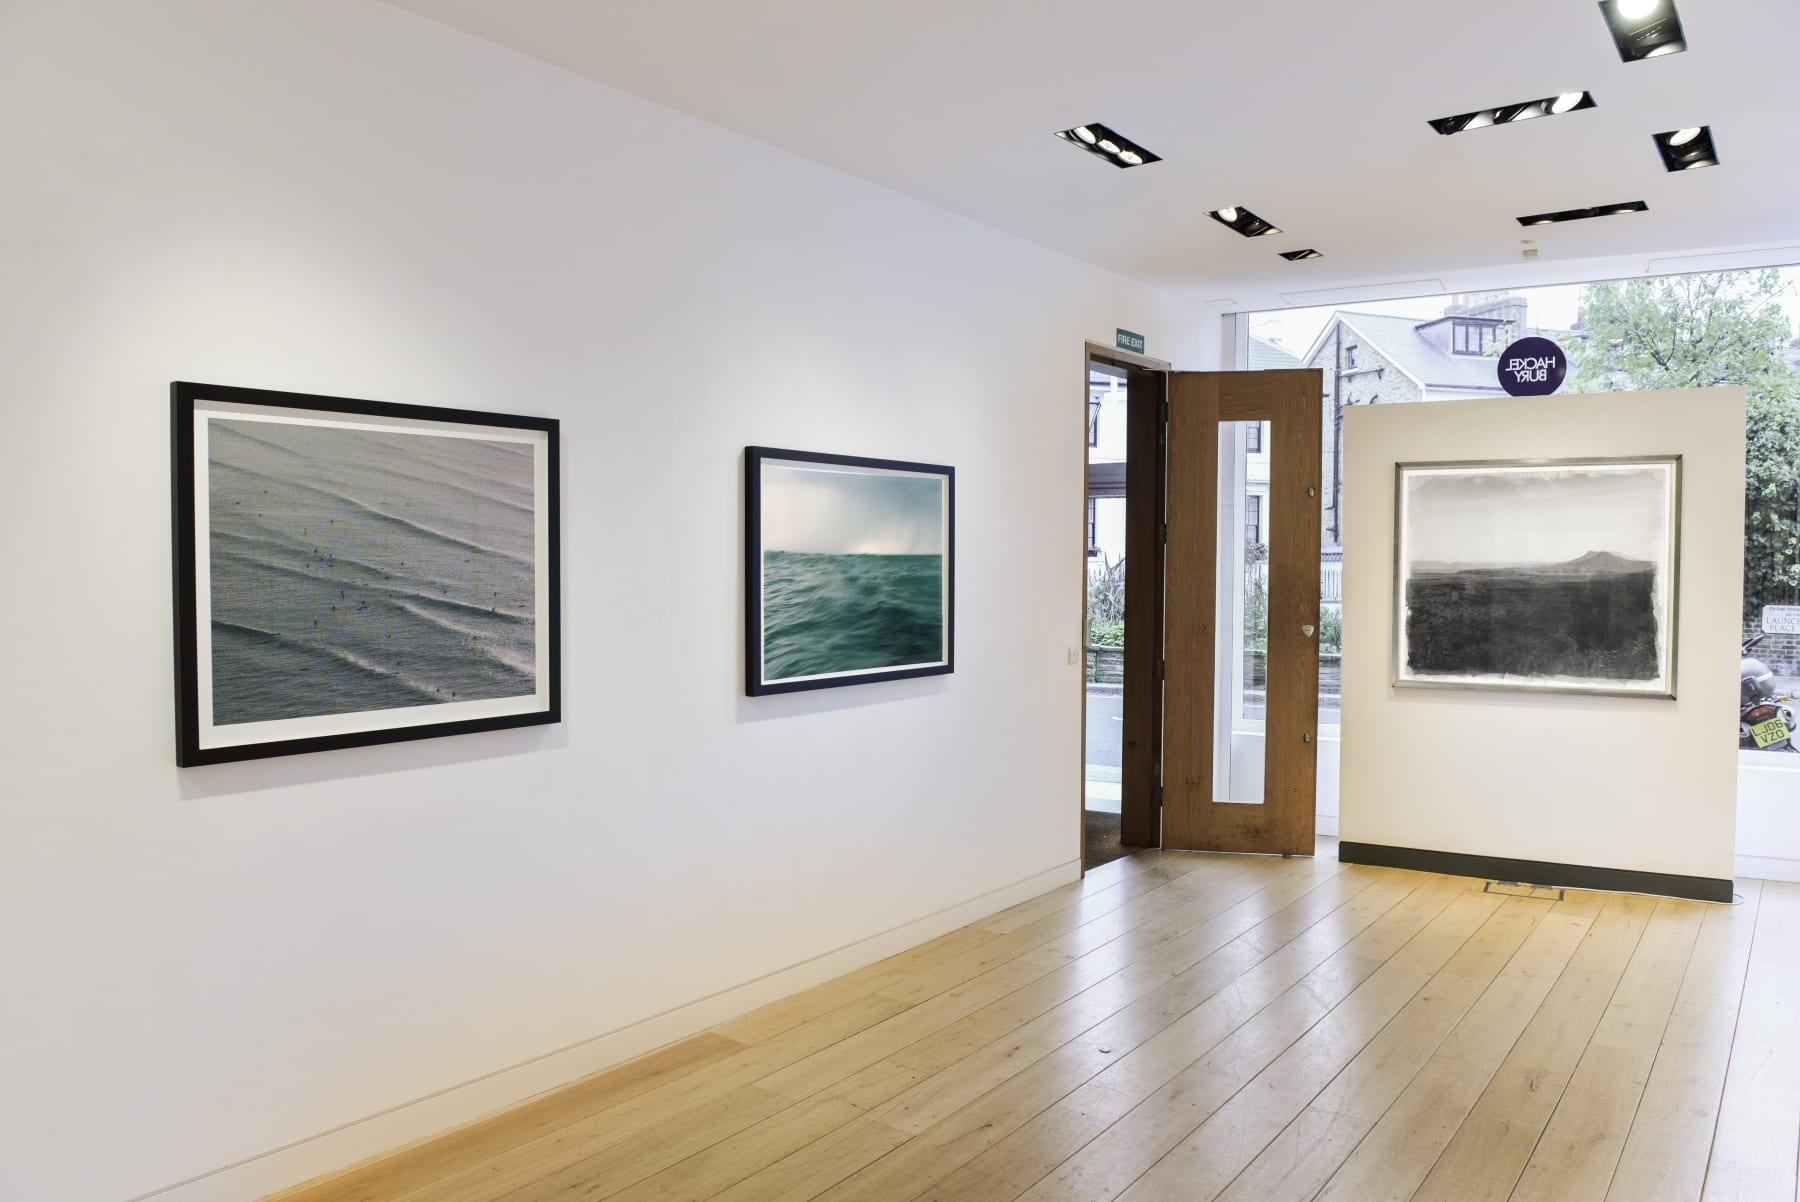 Stephen Inggs installation of photographs at HackelBury London